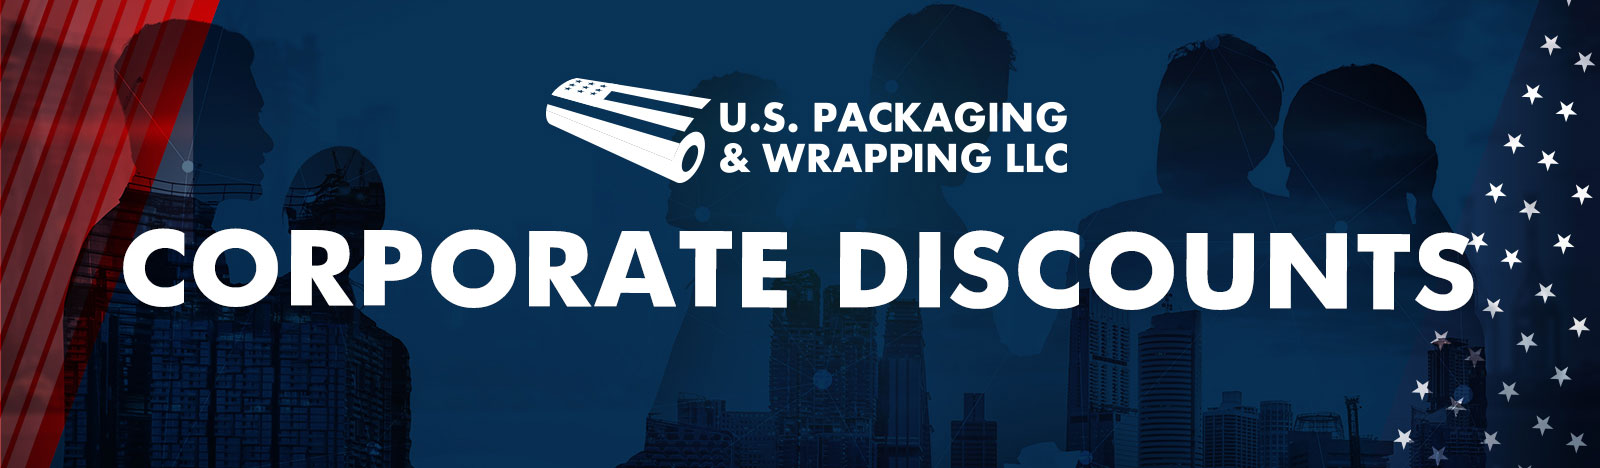 Corporate Discounts for US Packaging and wrapping